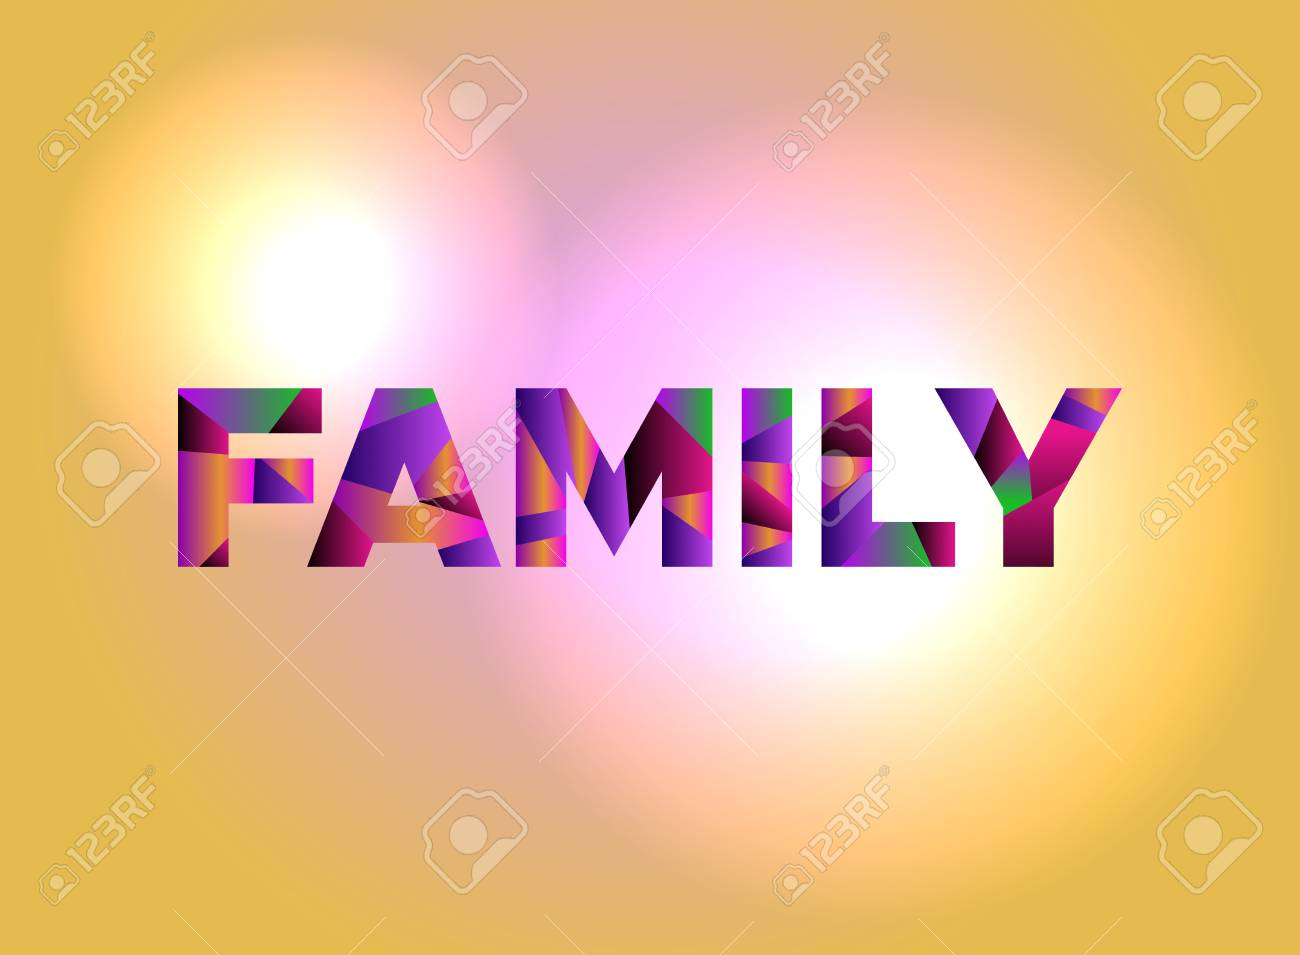 The word FAMILY written in colorful abstract word art